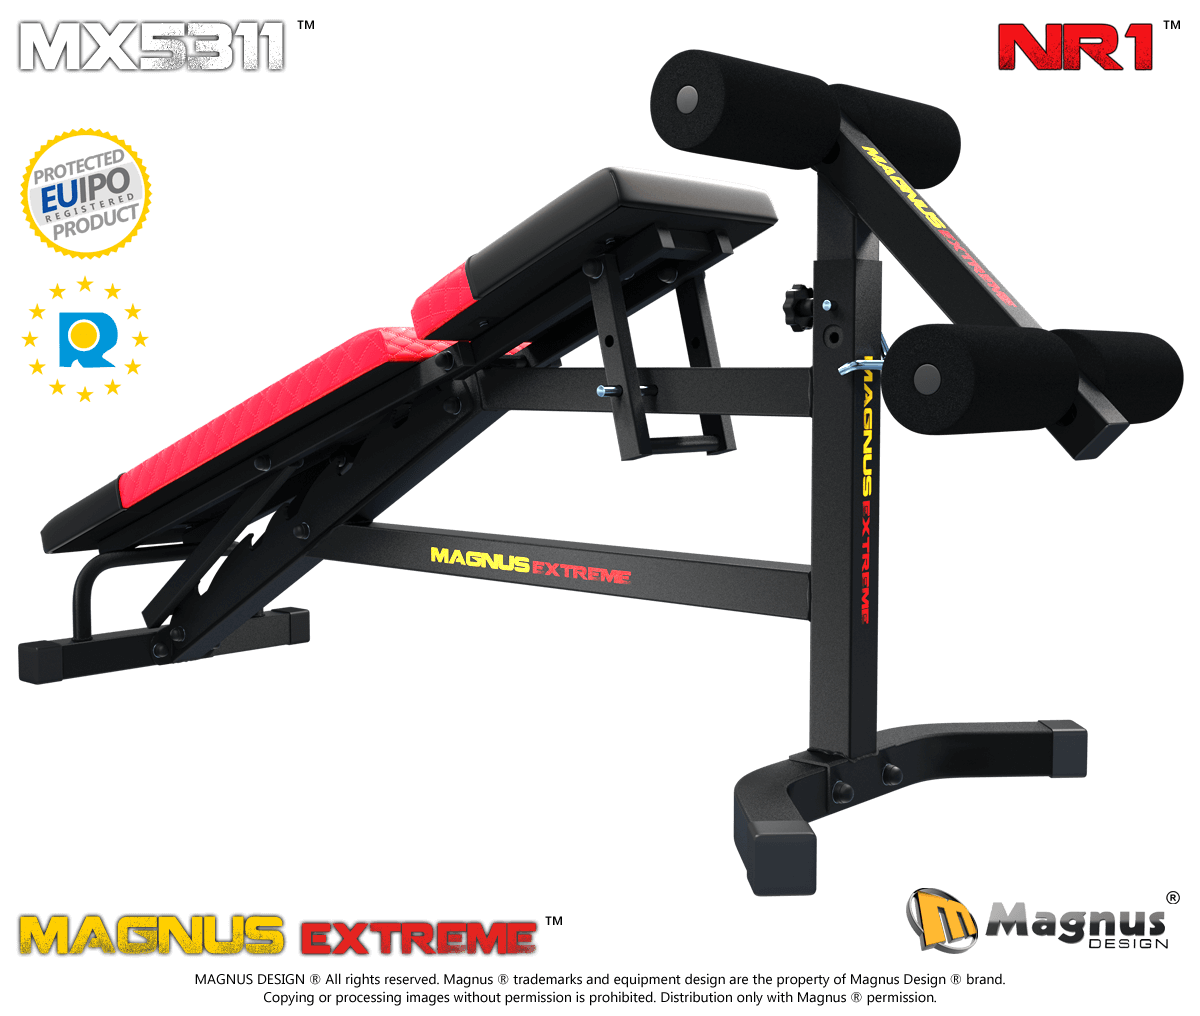 Equipment for abdominal muscles training from Magnus